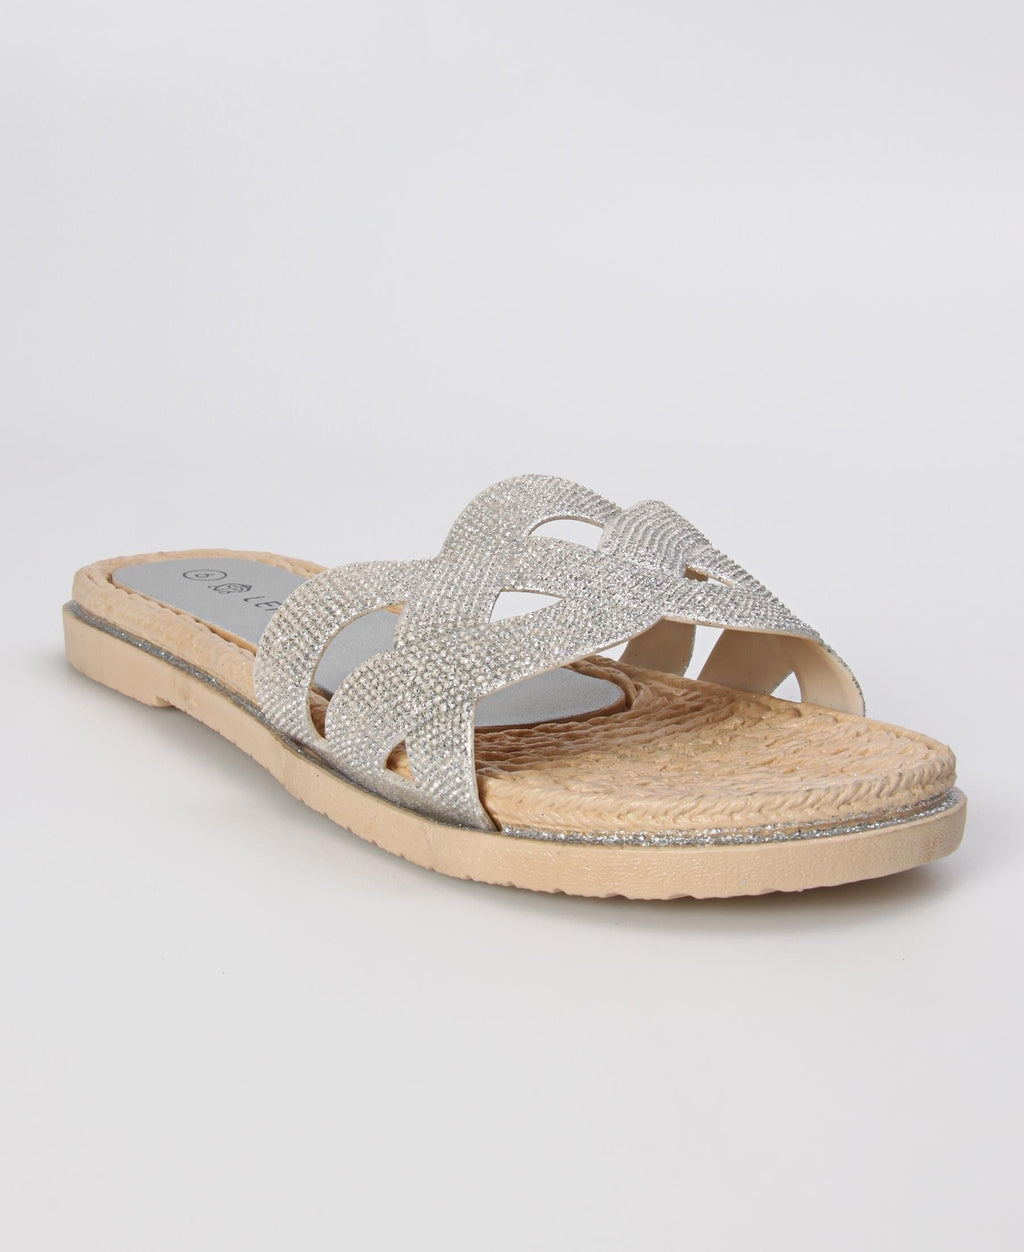 Slip On Flat Sandals - Silver